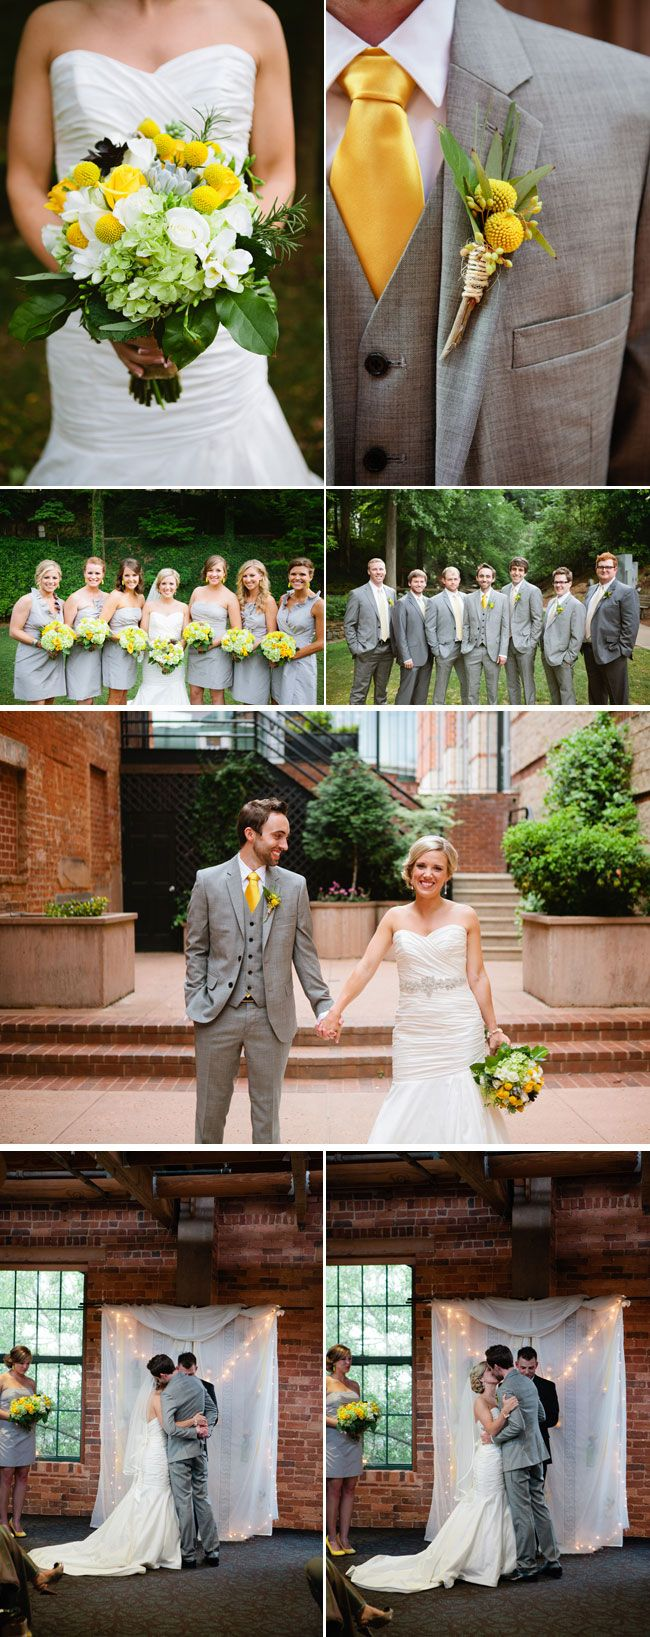 grey and yellow inspirations...grey suit with the yellow tie looks great! With sunflower bouquet  #rockmyspringwedding @Rock My Wedding